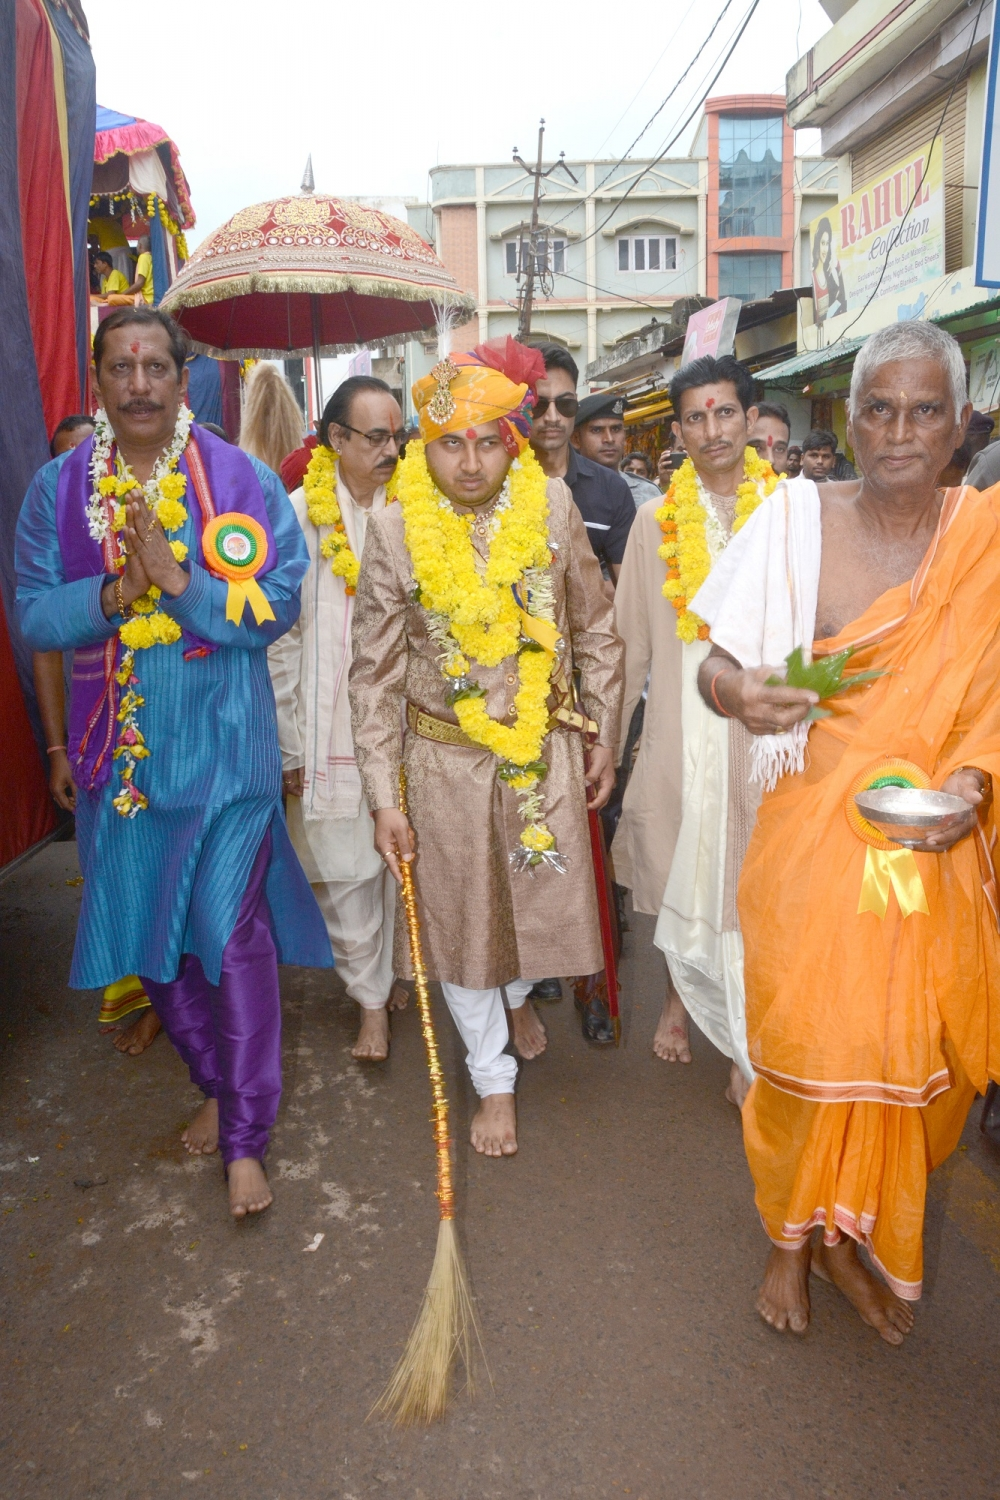 The king inaugurates the rath yatra by brooming the street, making way for the rath